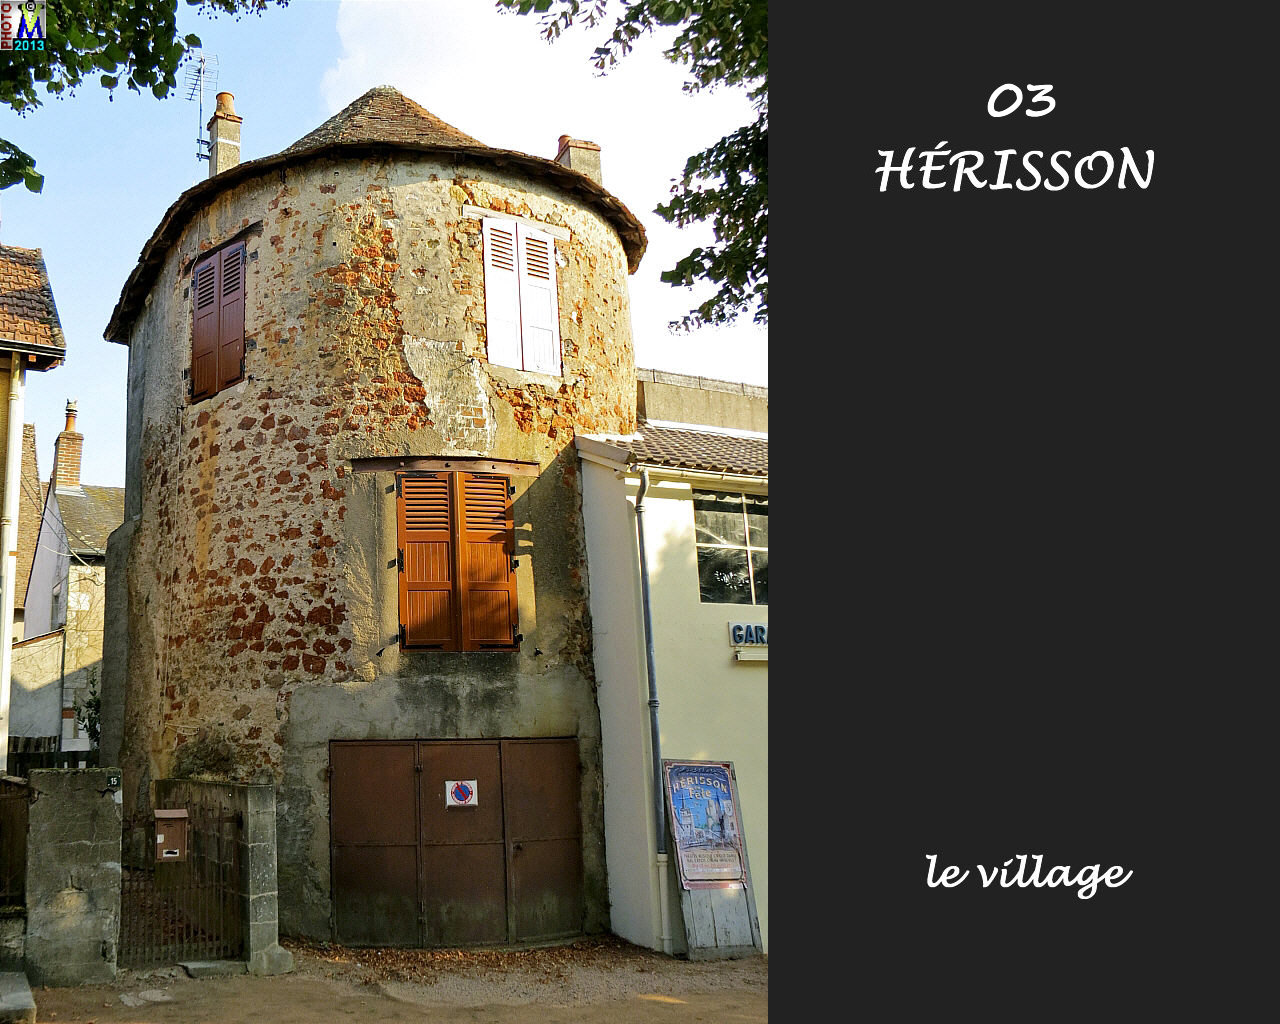 03HERISSON_village_114.jpg